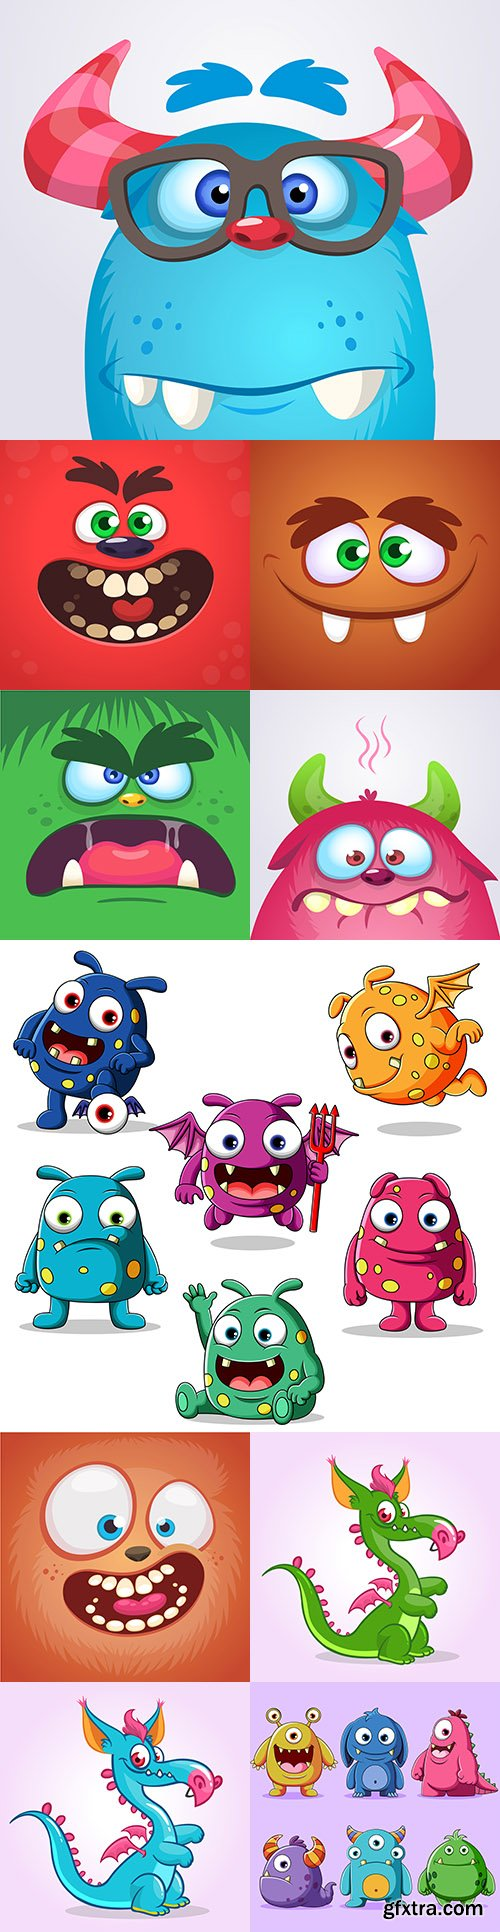 Funny cartoon monsters illustration